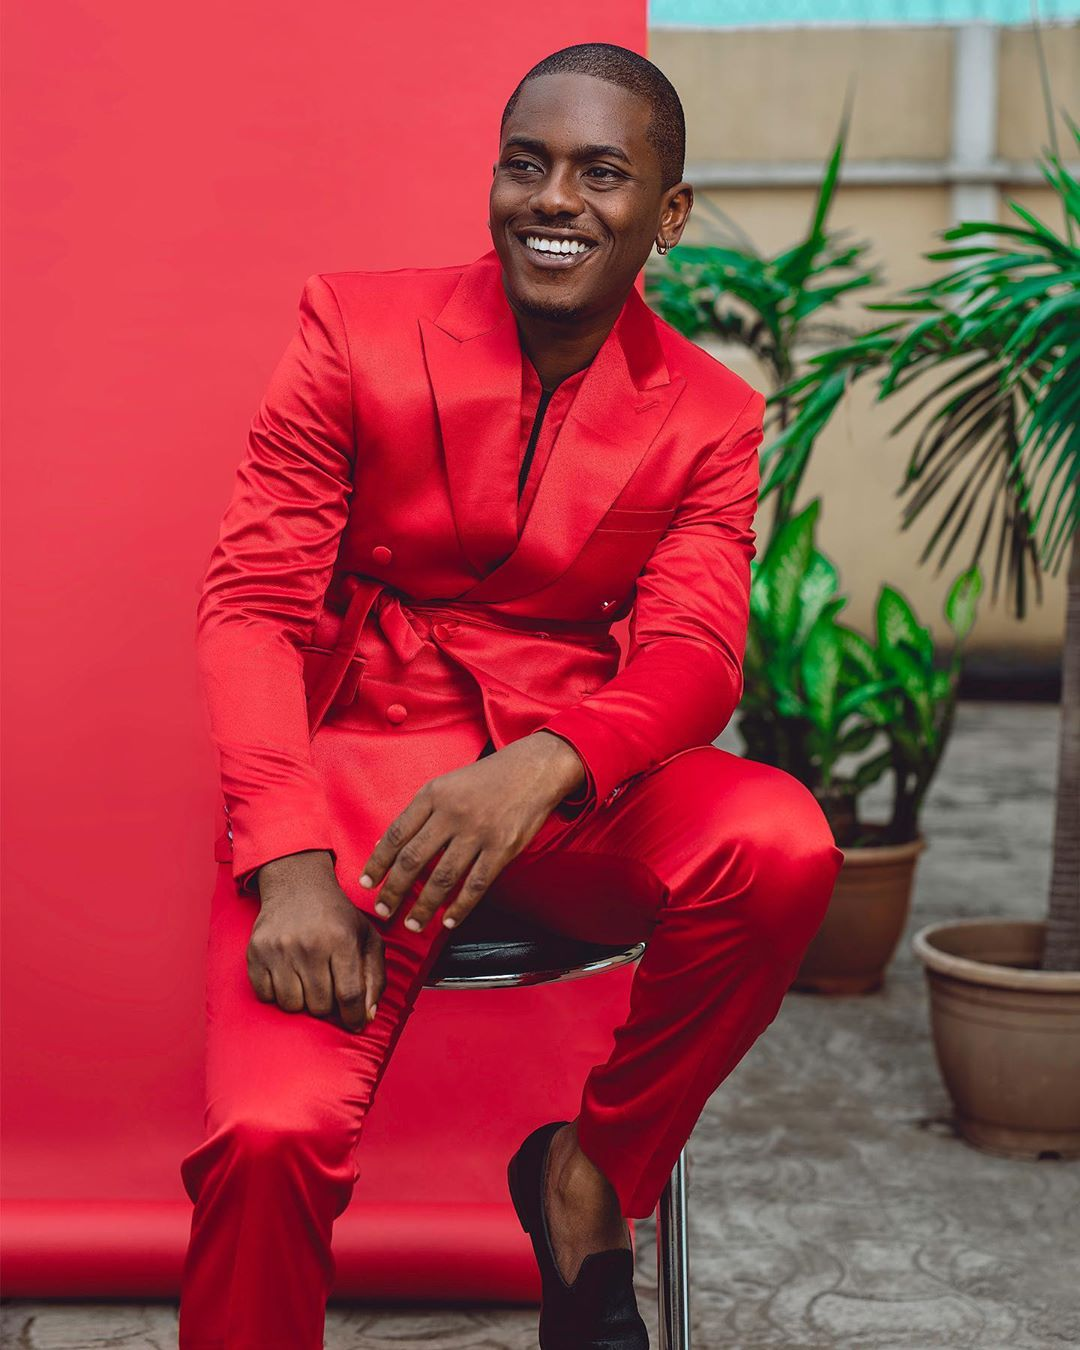 Men-style-fashion-red-suit-style-rave